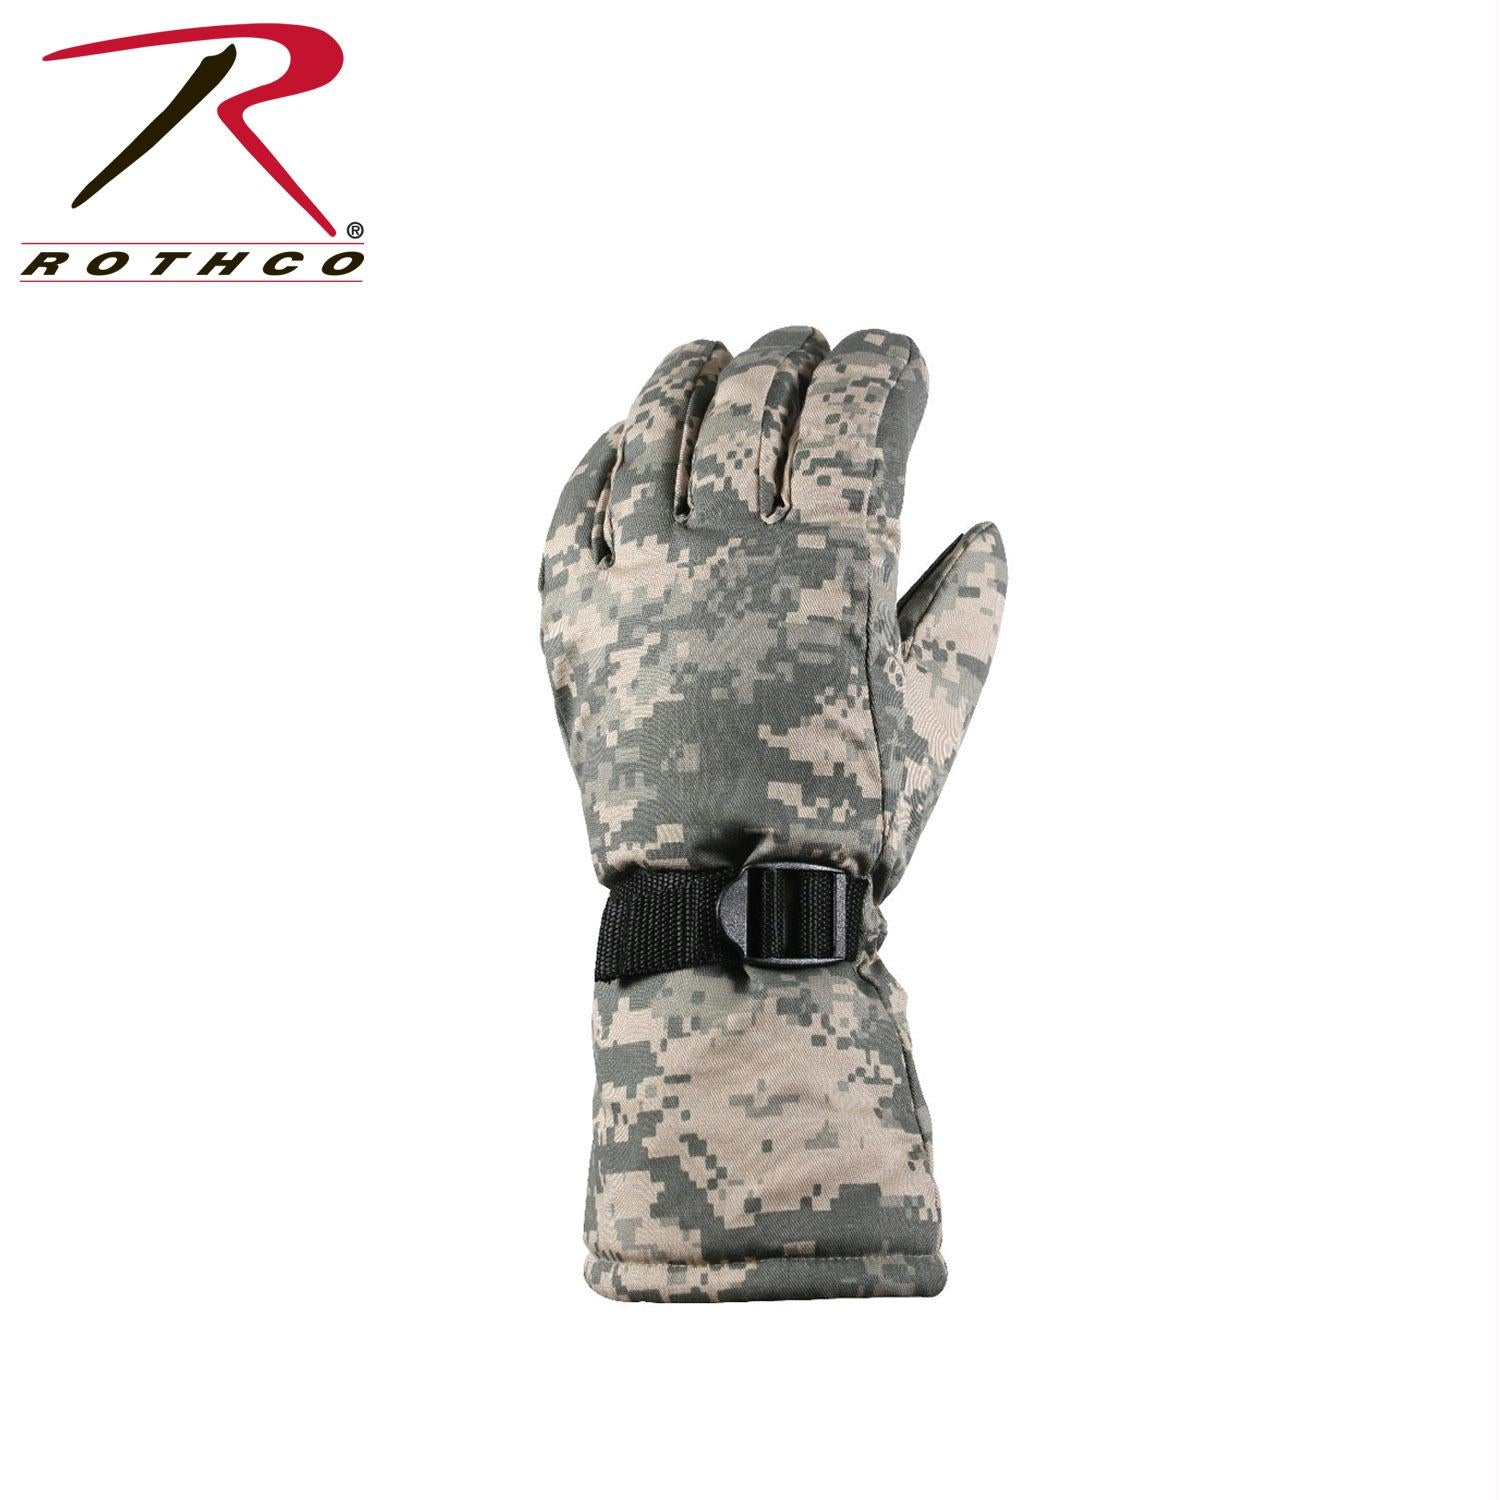 Rothco Extra-Long Insulated Gloves - ACU Digital Camo / L